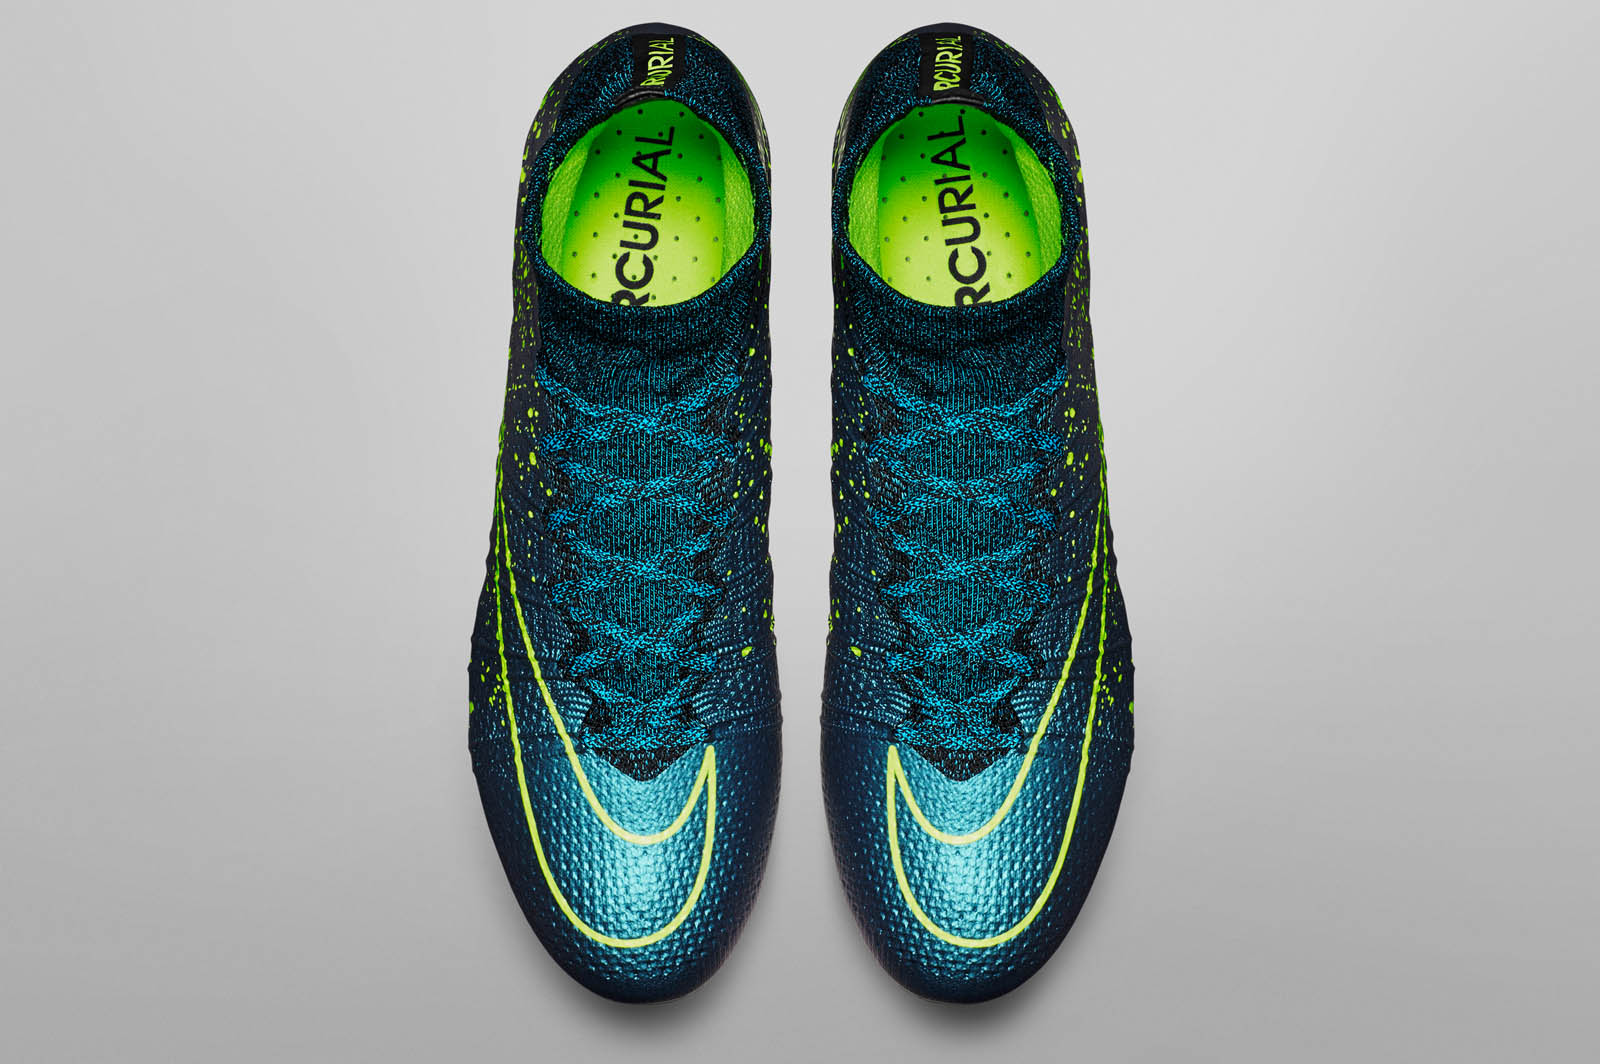 blaue nike mercurial superfly 2015 2016 fu ballschuhe. Black Bedroom Furniture Sets. Home Design Ideas